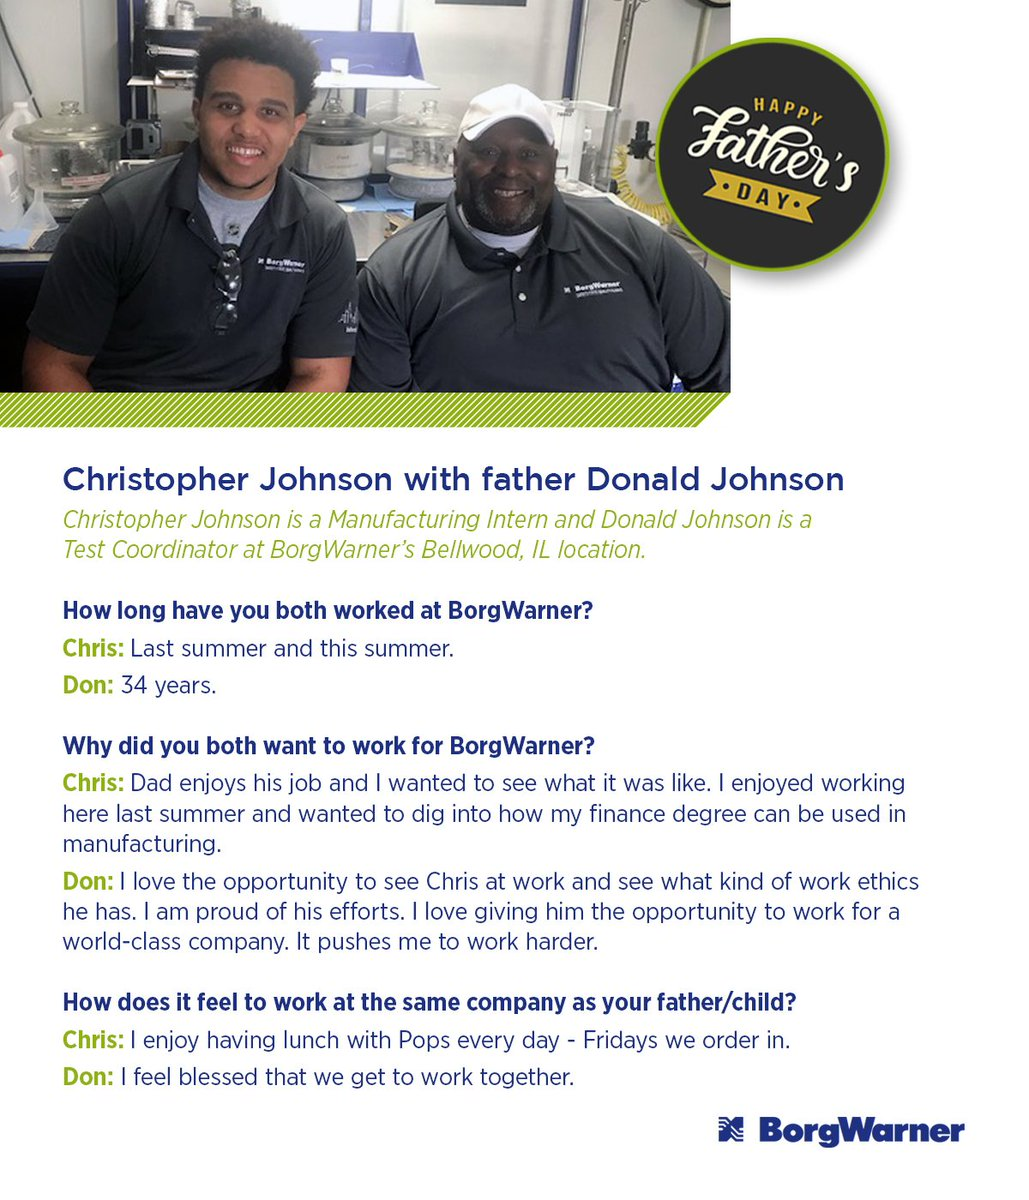 Father and son pair Christopher and Donald Johnson from BorgWarners Bellwood, IL facility are helping us kick off the Fathers Day celebration this year by sharing what they love about working together!